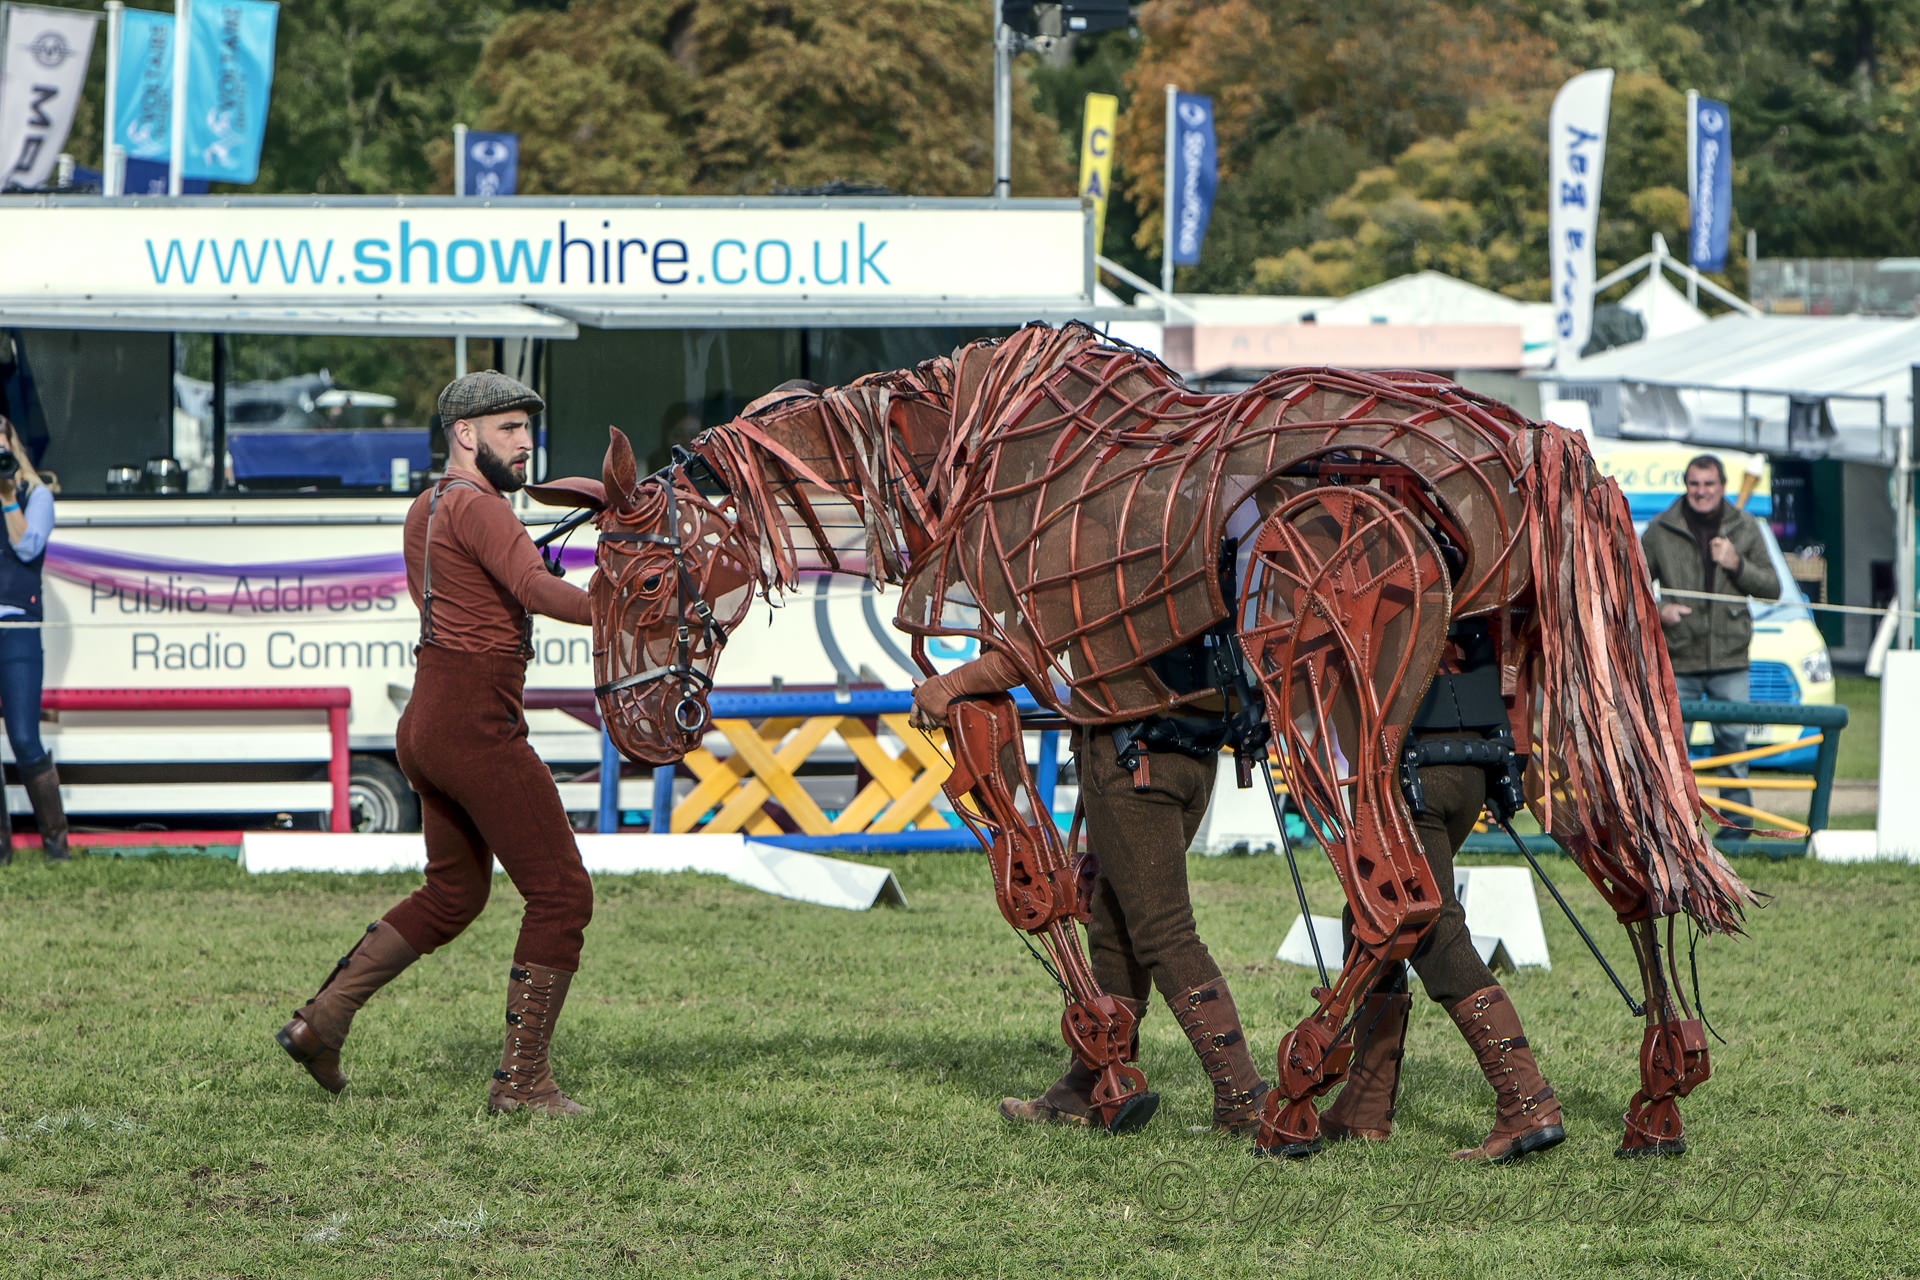 War Horse at Blenheim Palace